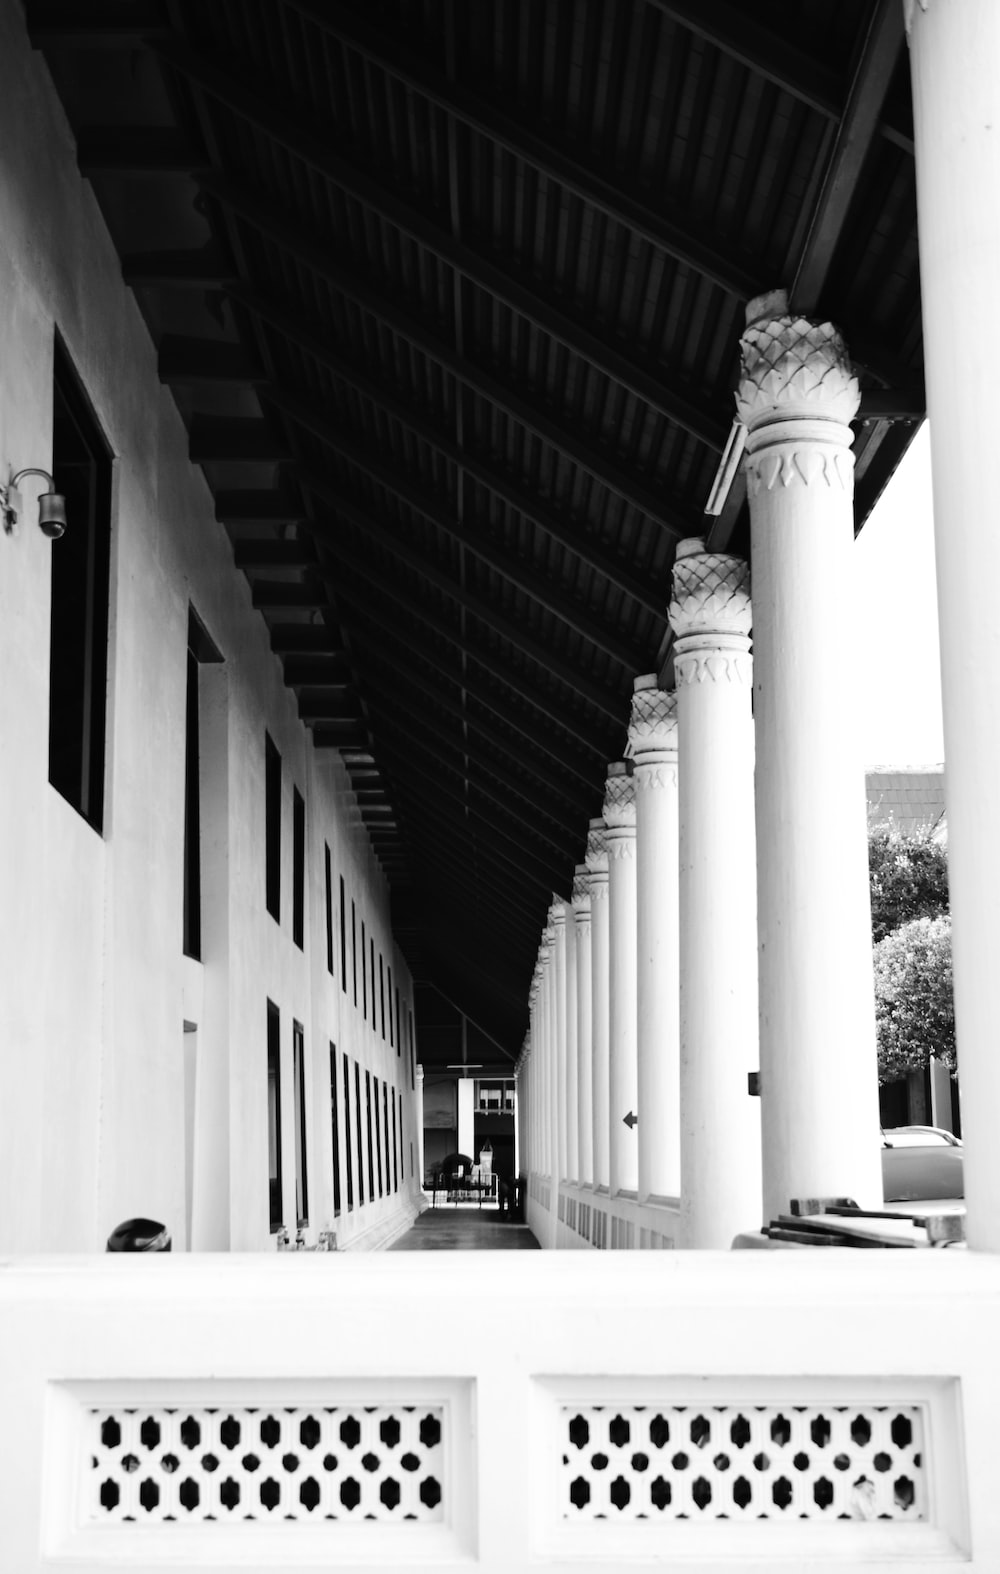 grayscale photography of a building hallway